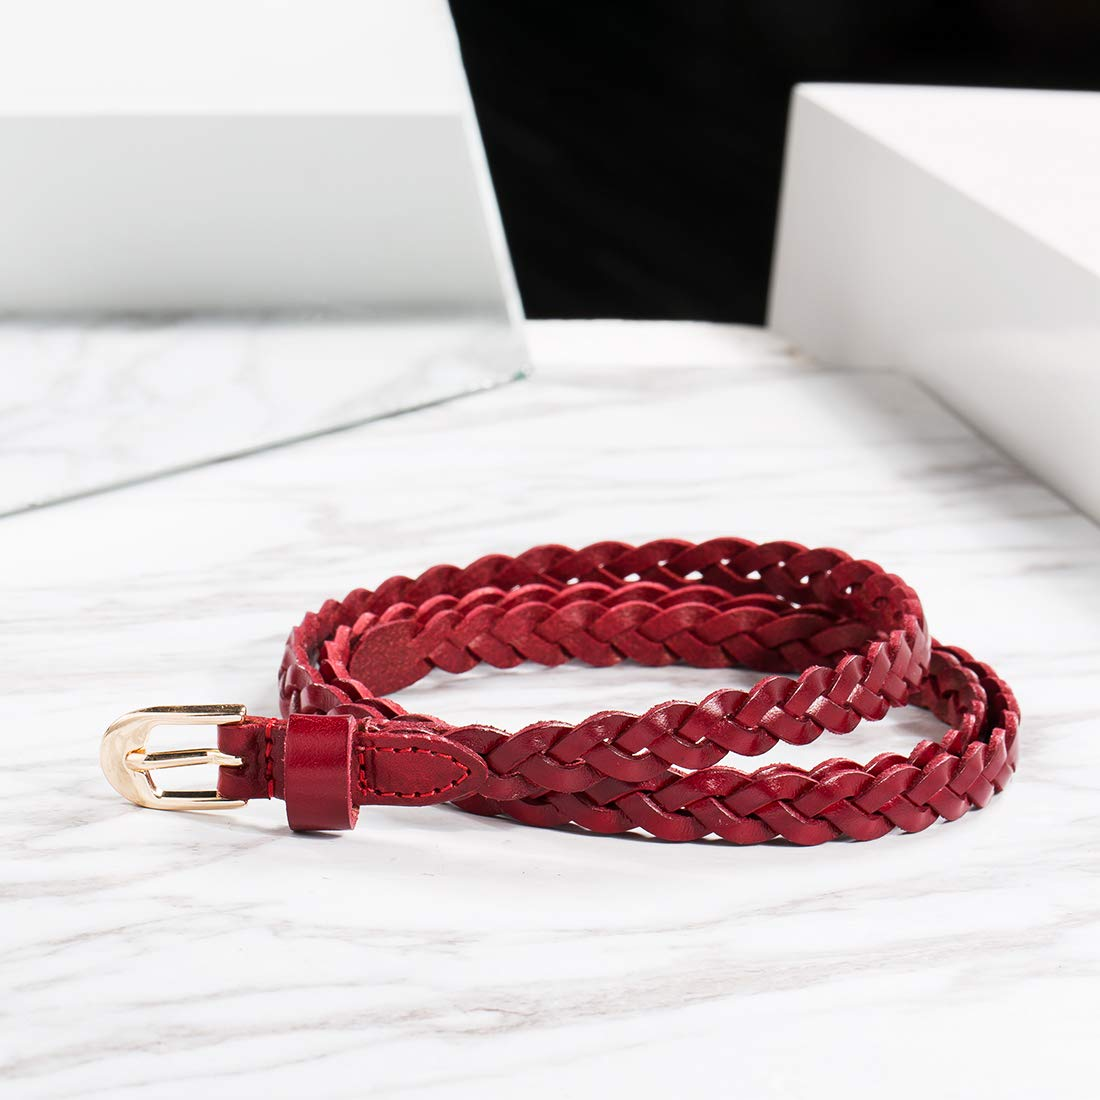 Women Cow Leather Stylish Adjustable Casual Skinny Belts Woven Stretch Braided Red Belts by OMENTAR (Image #2)